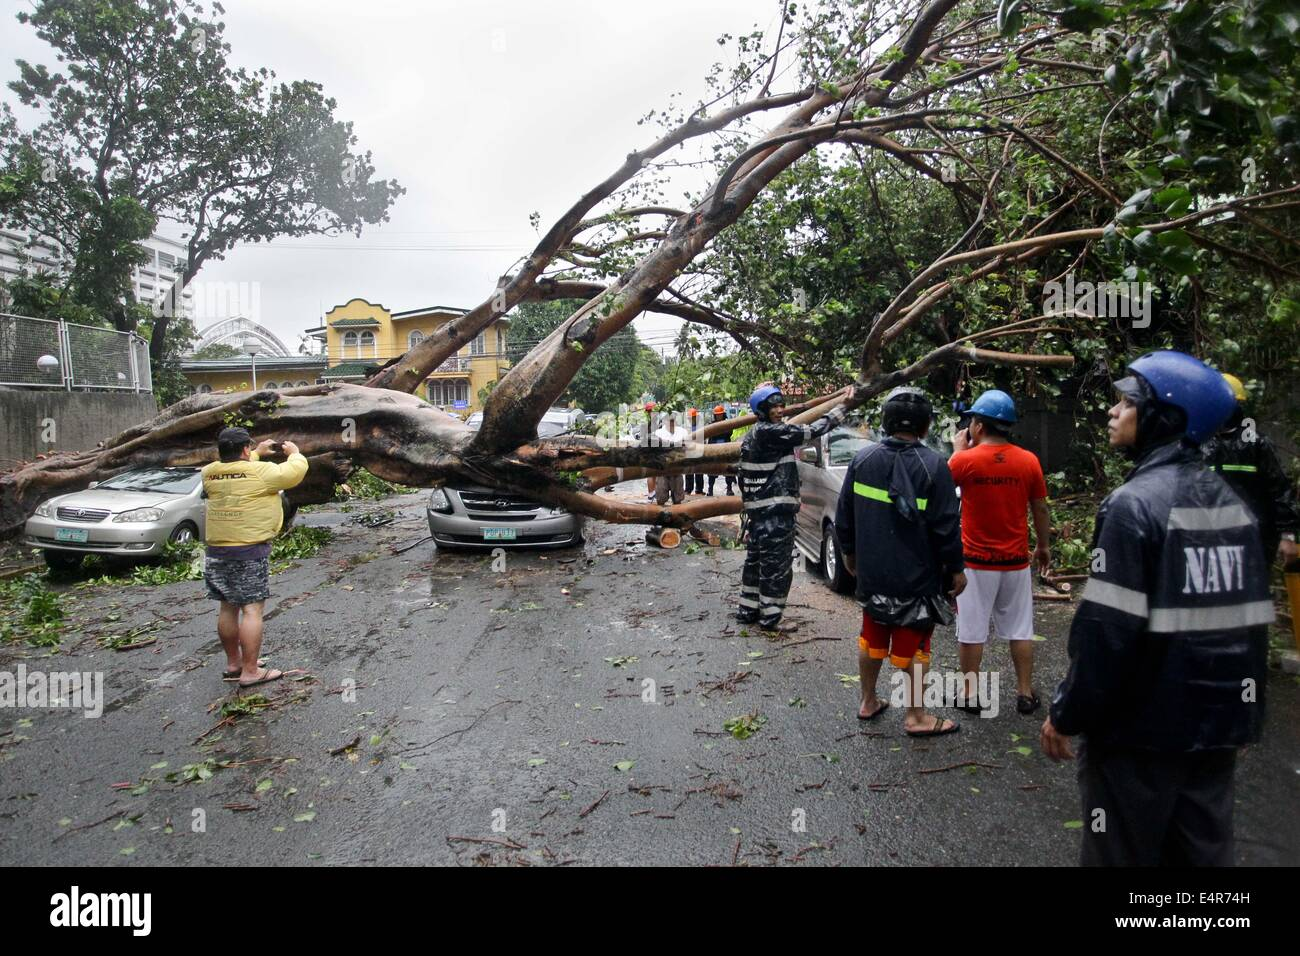 Manila, Philippines. 16th July, 2014. Local resuce workers attempt to remove debris as a tree toppled down on vehicles - Stock Image